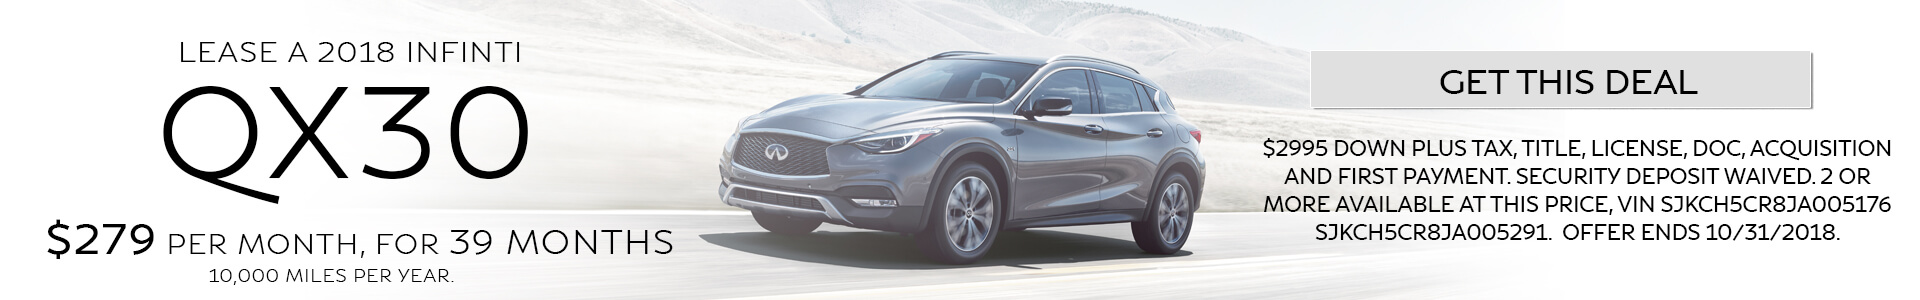 QX30 Lease Offer